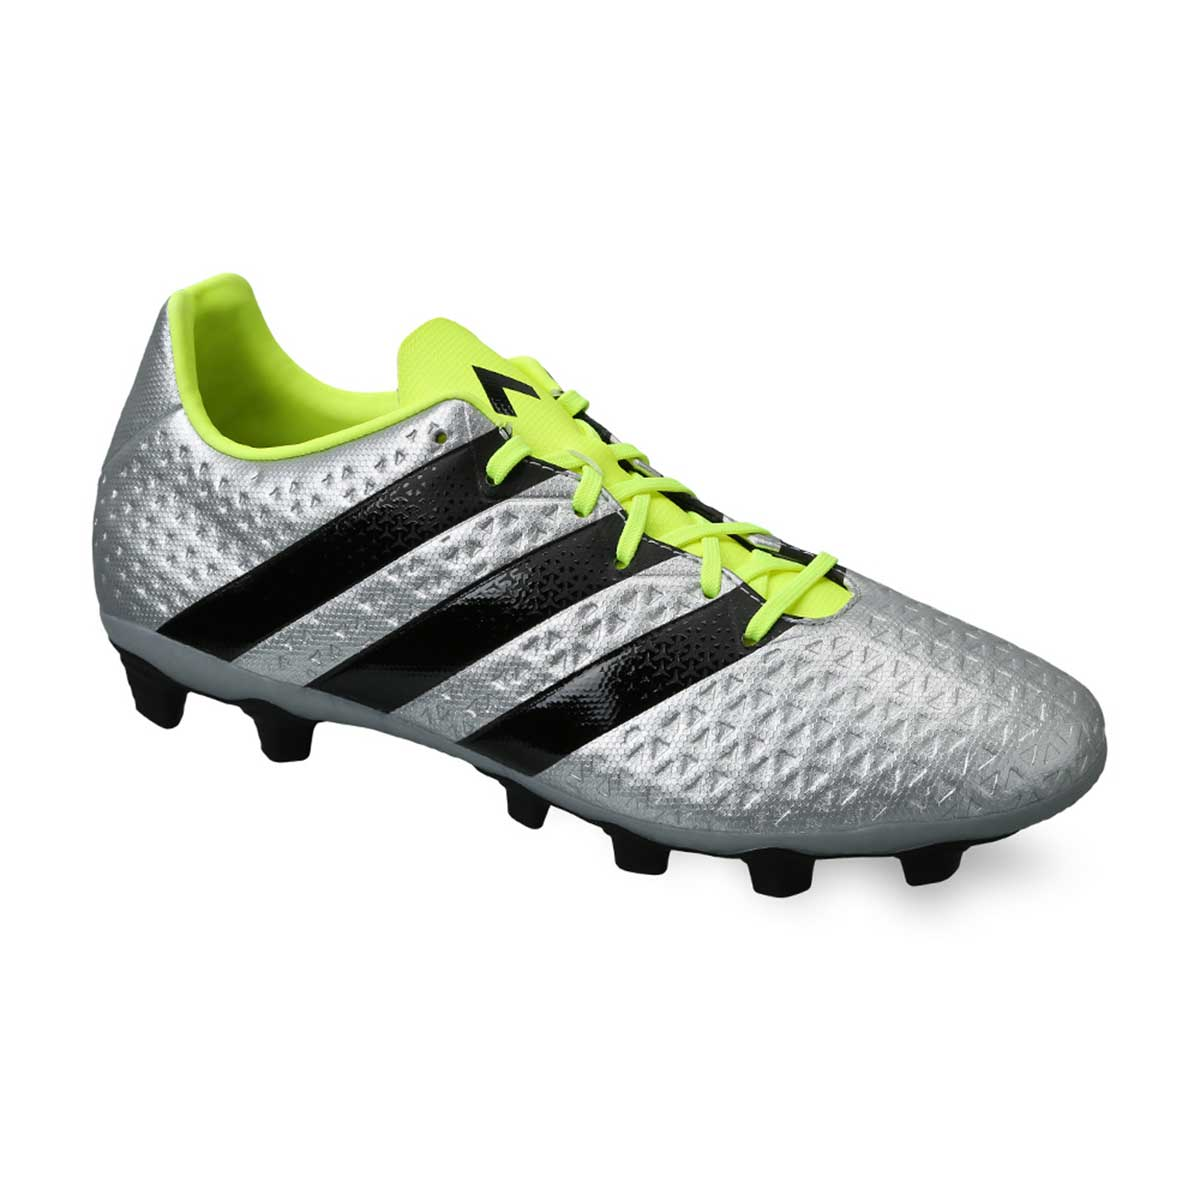 huge discount c392b a04e6 Adidas ACE 16.4 FXG Football Shoes (Silver/Black/Yellow)